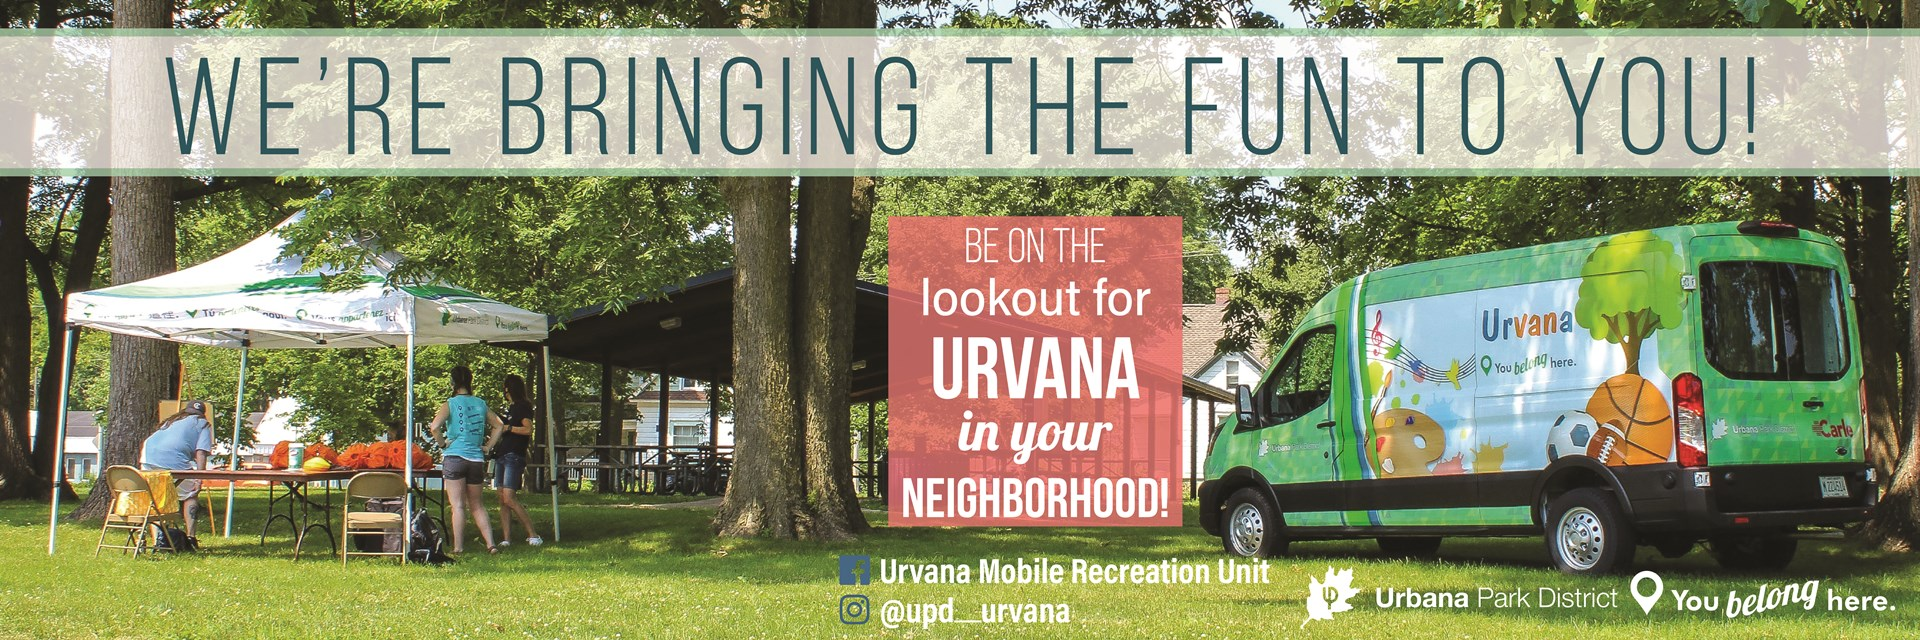 Be on the lookout for Urvana!